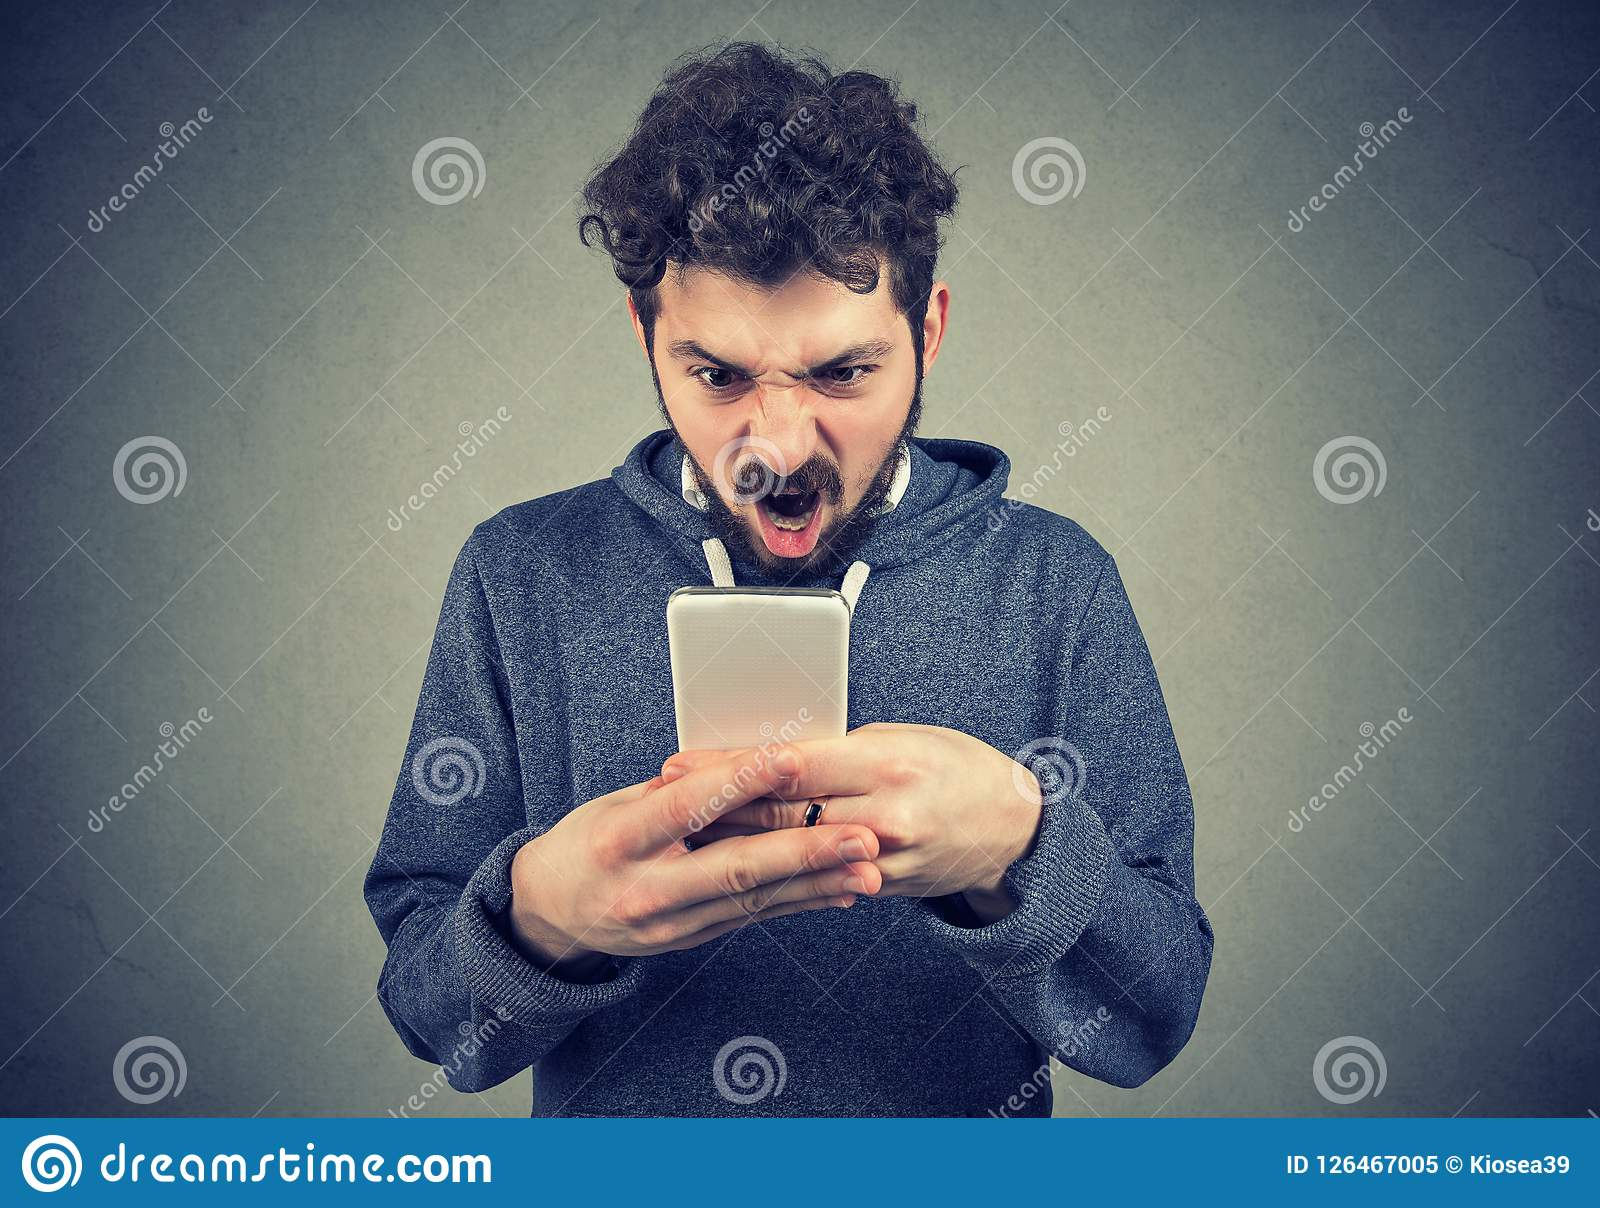 Frustrated angry man reading a text message on his smartphone feeling frustrated